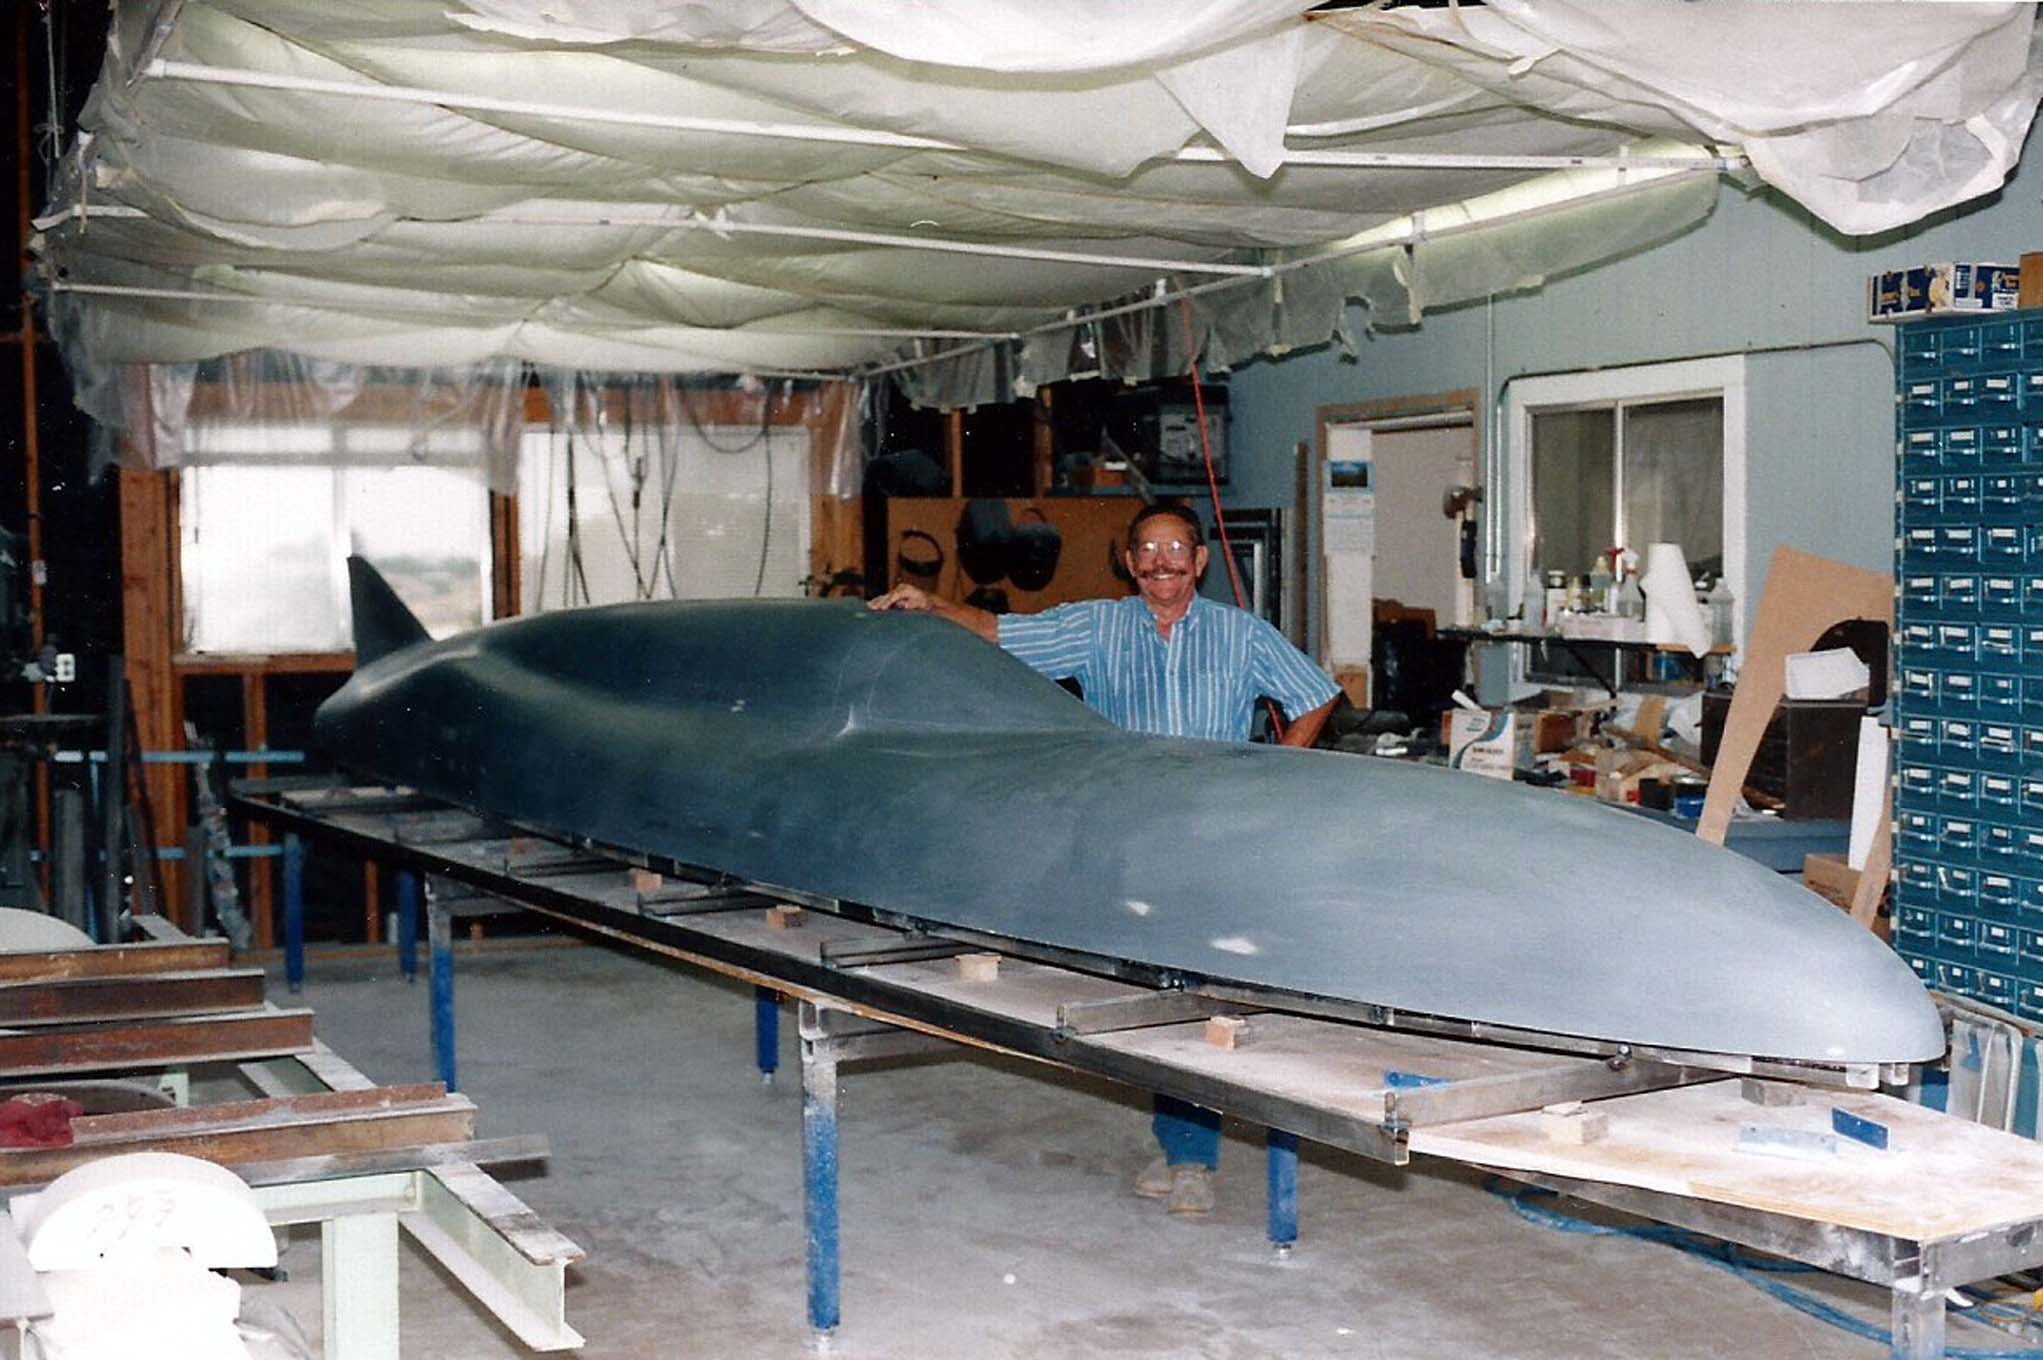 """The construction of Skip's streamliner was a complicated affair taking five years to build. """"I envisioned a streamliner that was most importantly aerodynamically sound,"""" says Skip. He worked with aerodynamicist Lynn Yakel, whose experience included work with NASA, to create a body """"like an airplane fuselage, excluding the wings."""" Here, Skip is standing behind the top half of the plug used to make the fiberglass streamliner body."""